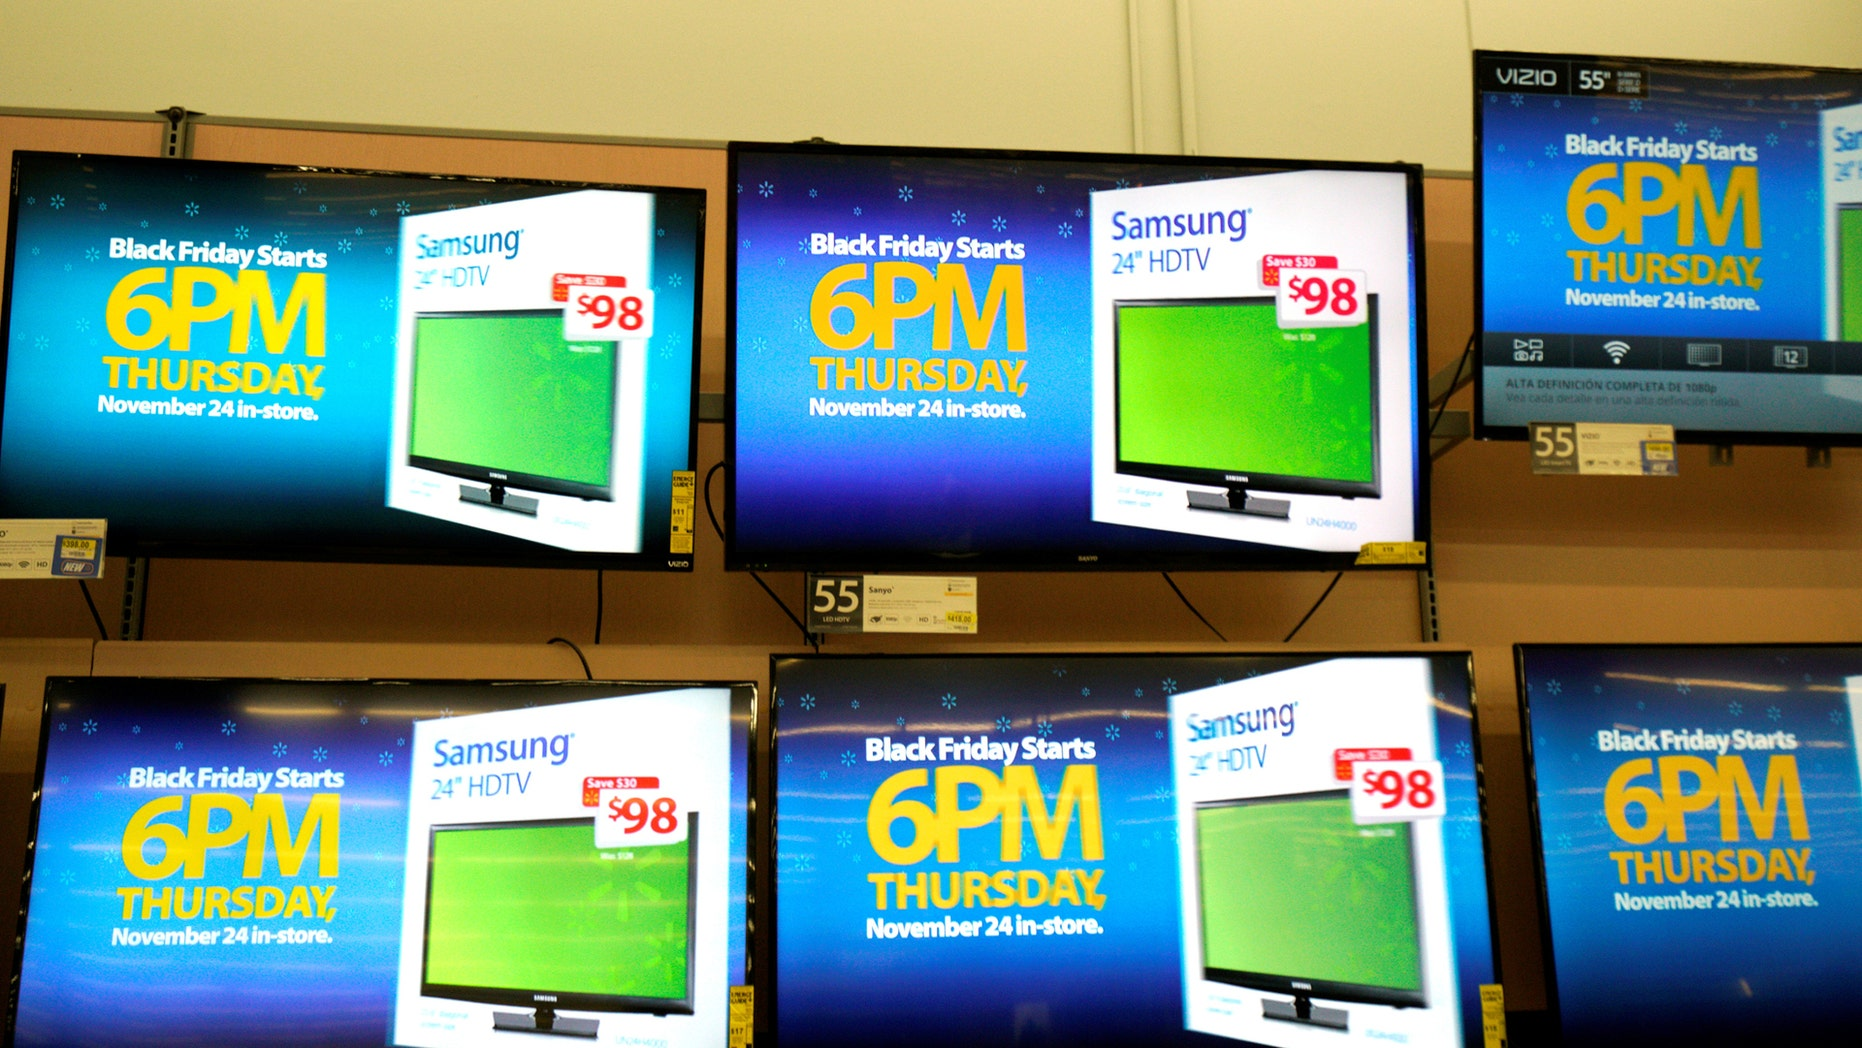 File photo - Advertisements of the upcoming Black Friday sales are seen on TV screens at a Walmart store in Westminster, Colorado, U.S. Nov. 23, 2016. (REUTERS/Rick Wilking)